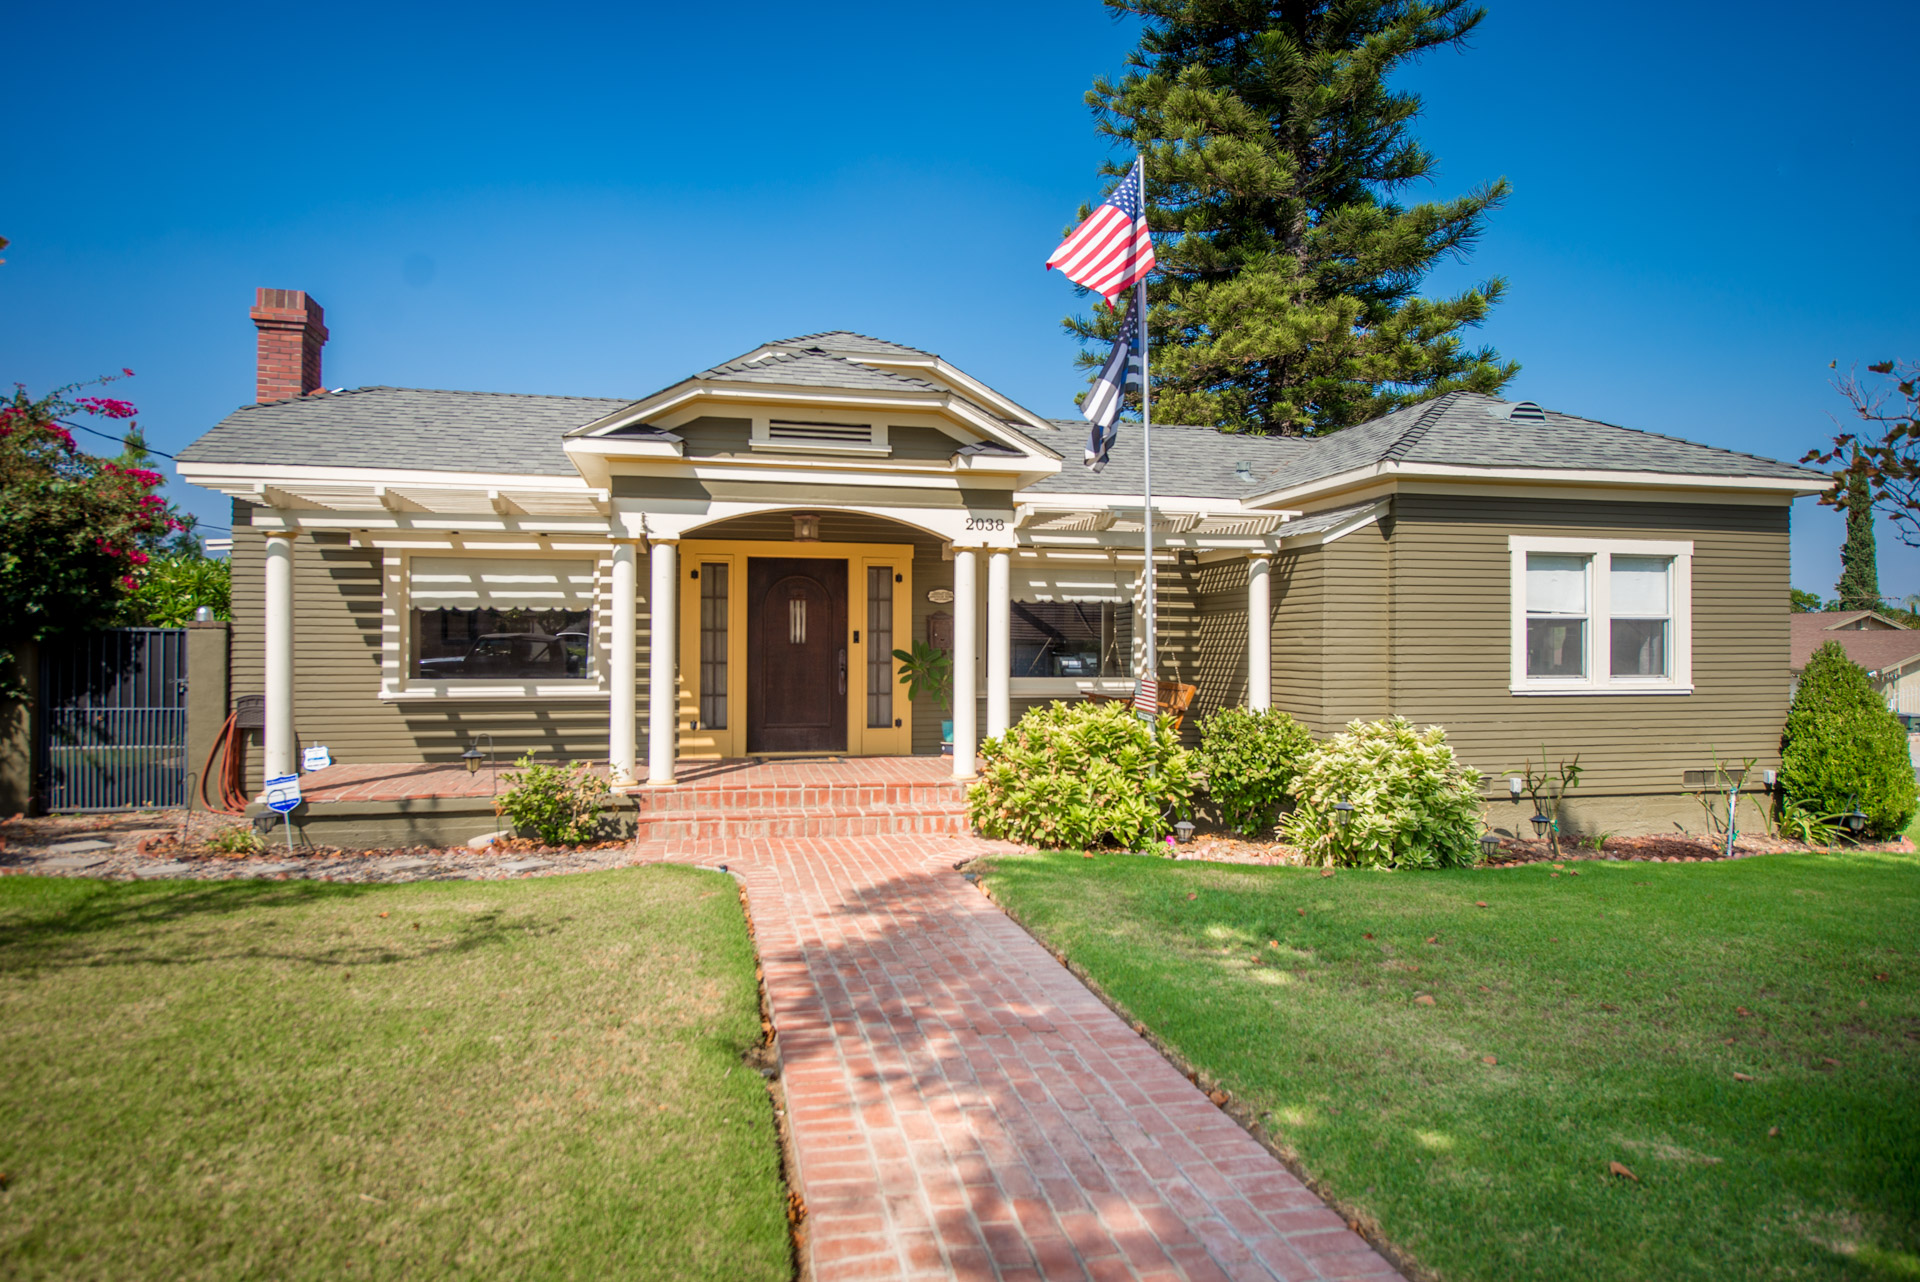 Craftsman House In Corona SOLD!